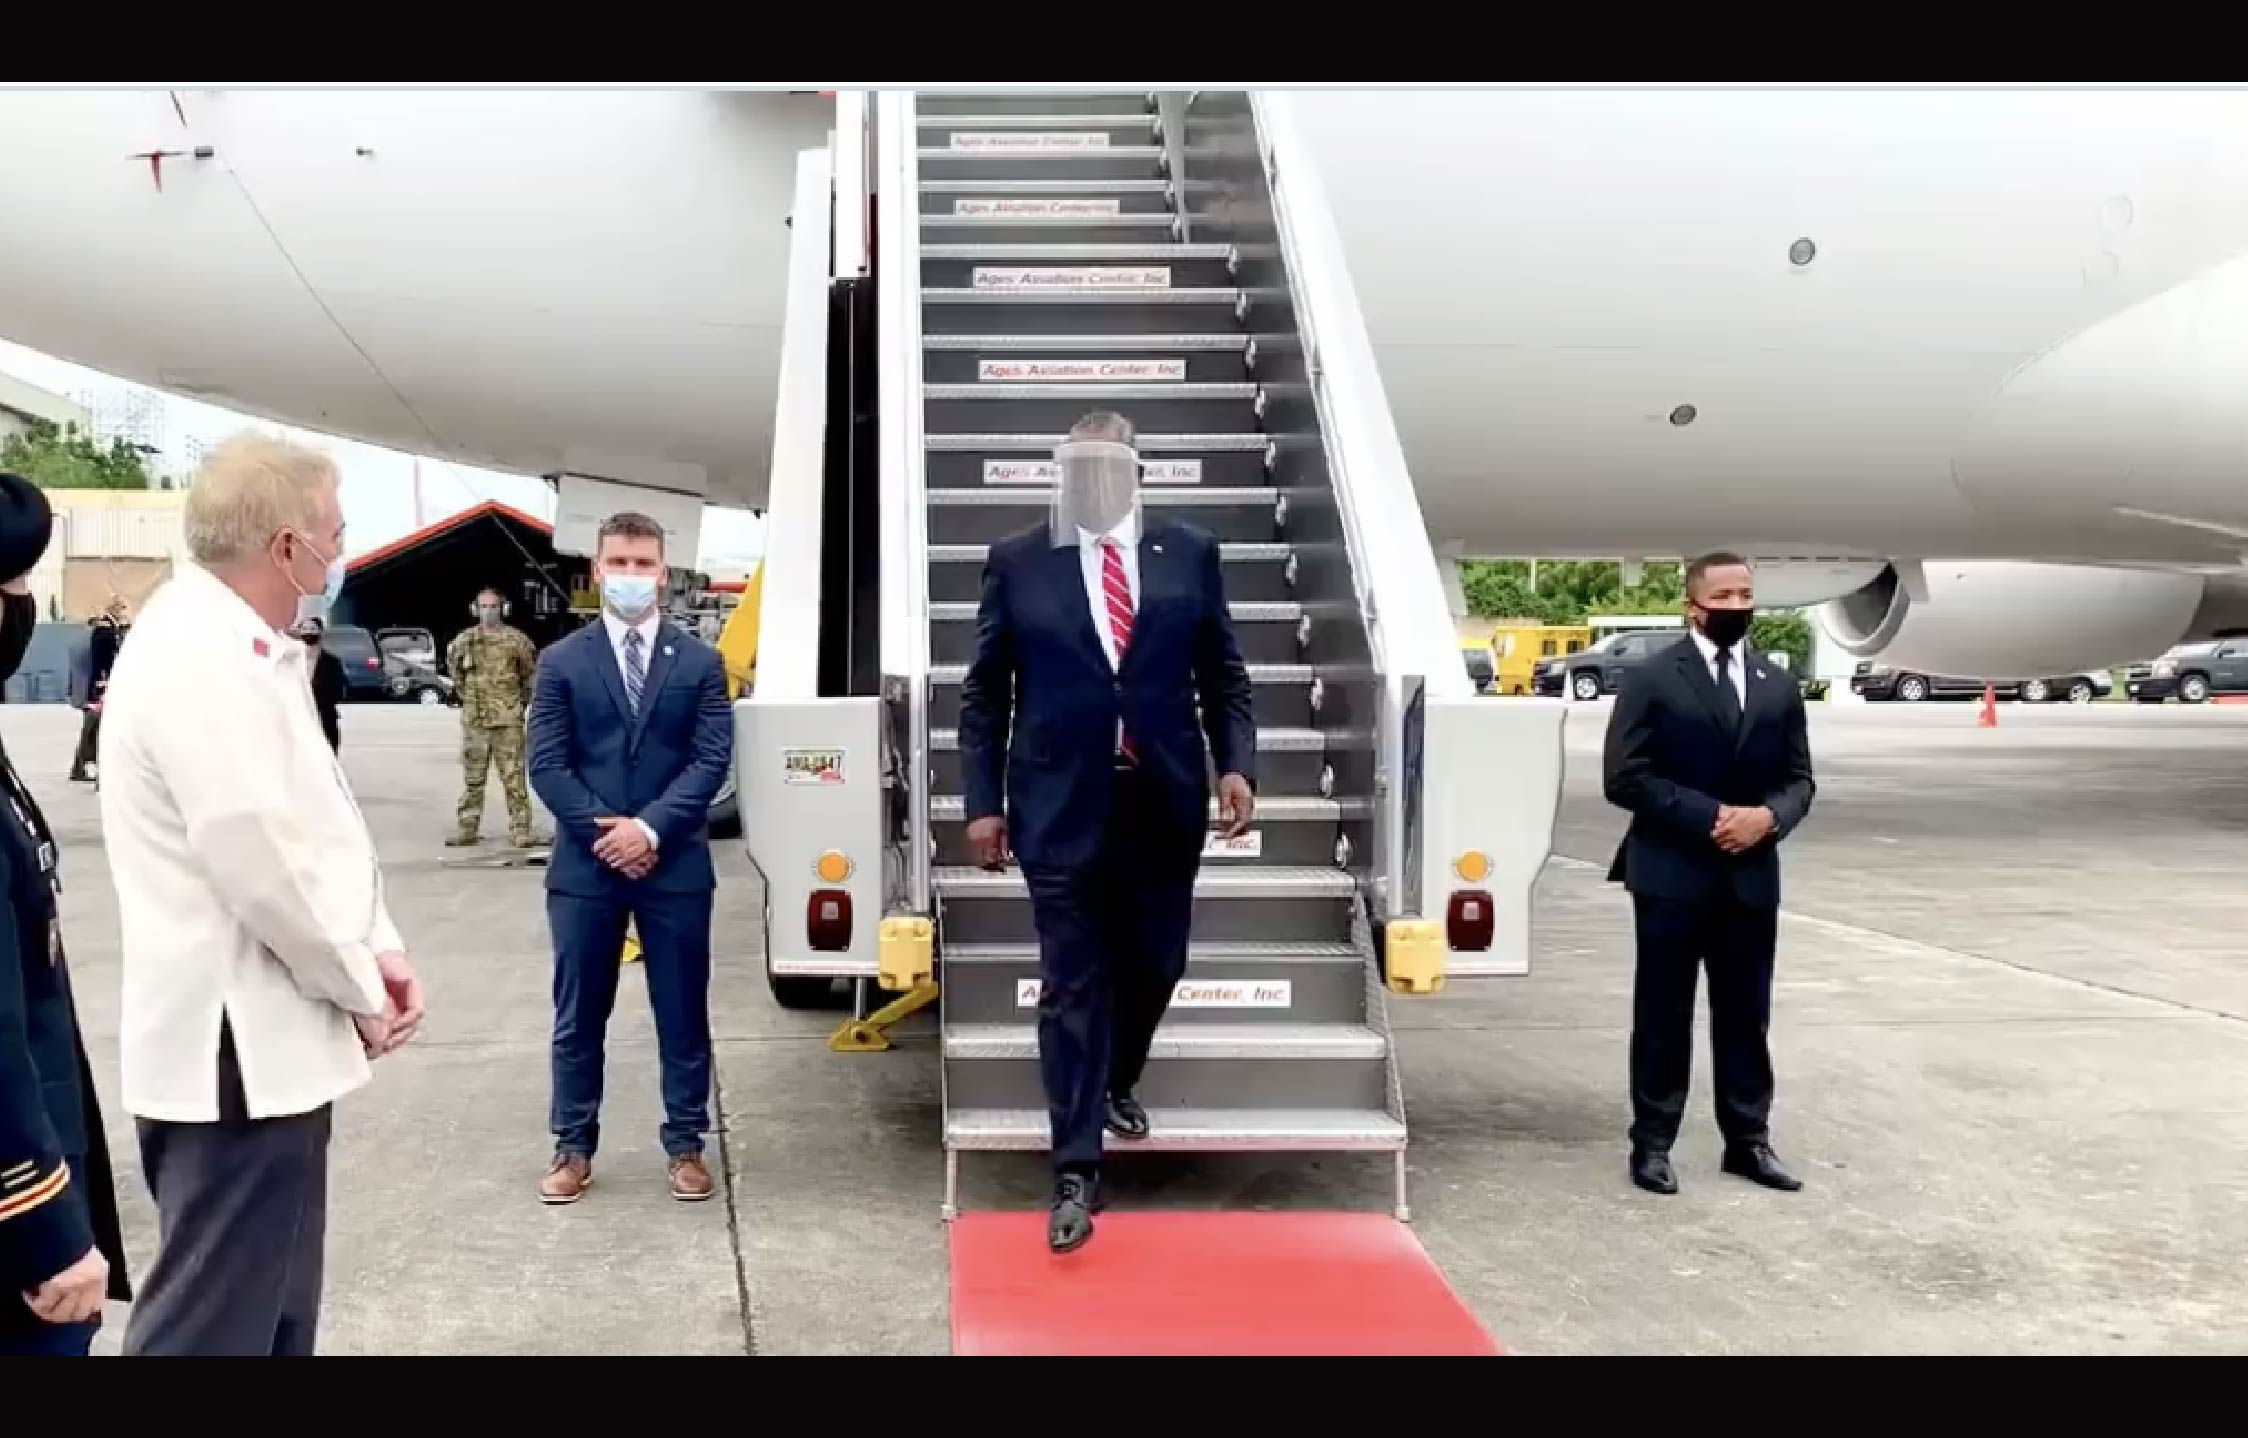 [VIDEO] Biden's Secretary of Defense Confuses Many With His Getup As He Disembarks in the Philippines